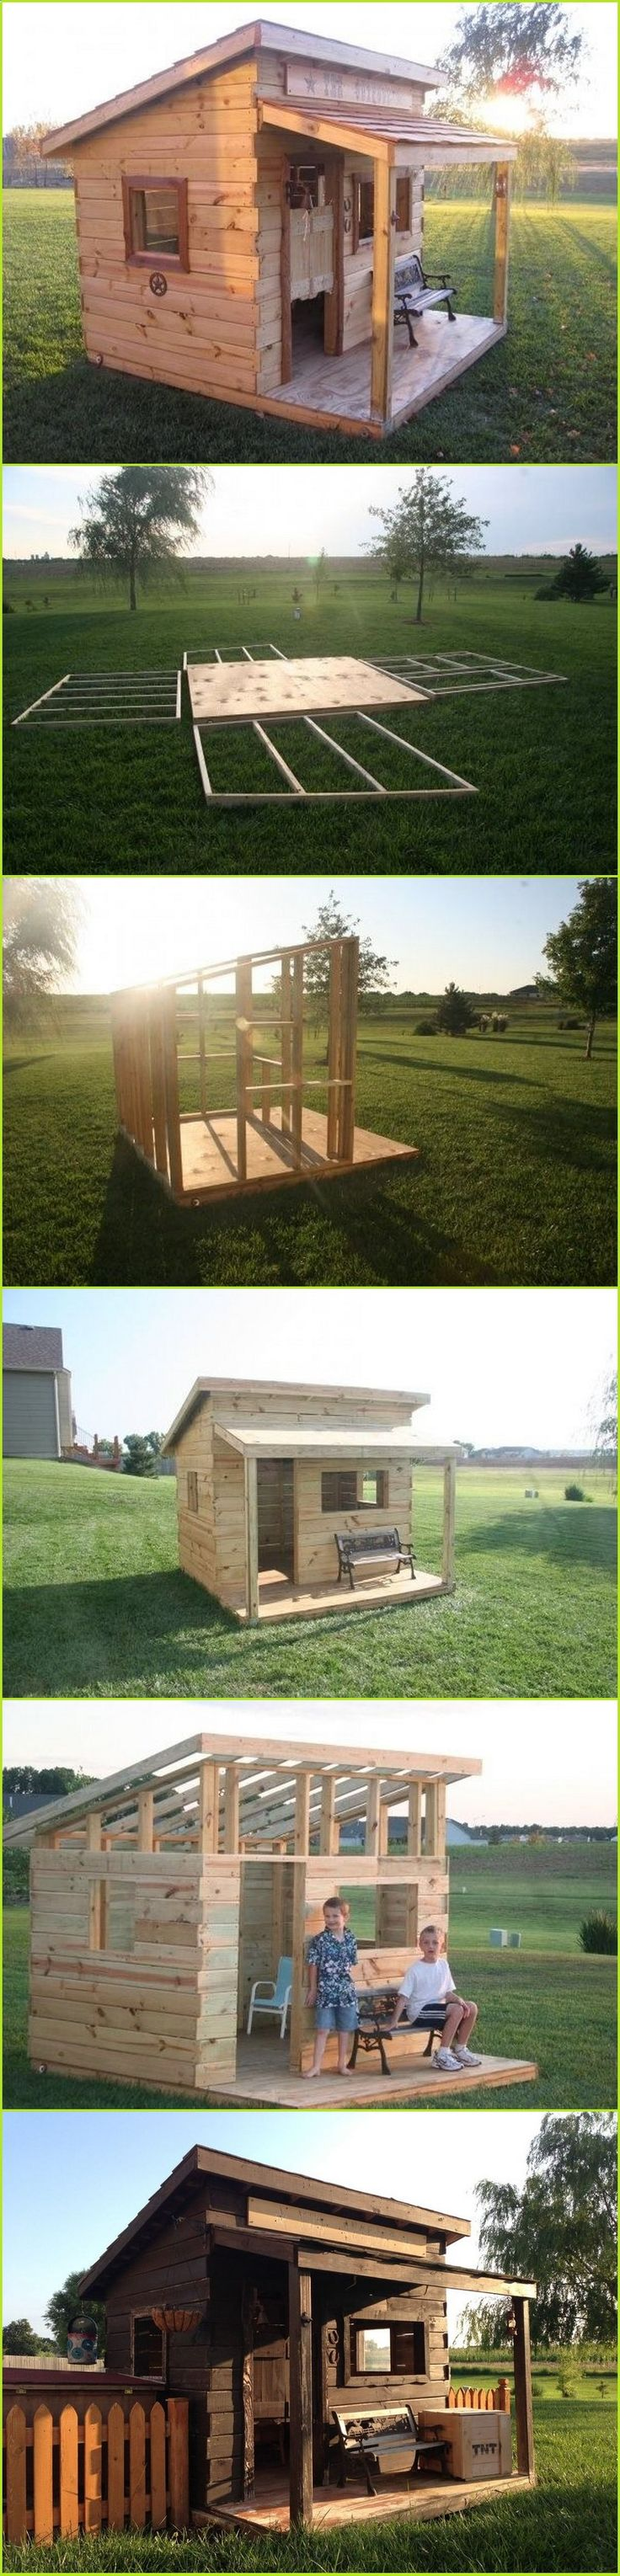 25 best sheds images on pinterest woodwork sheds and architecture